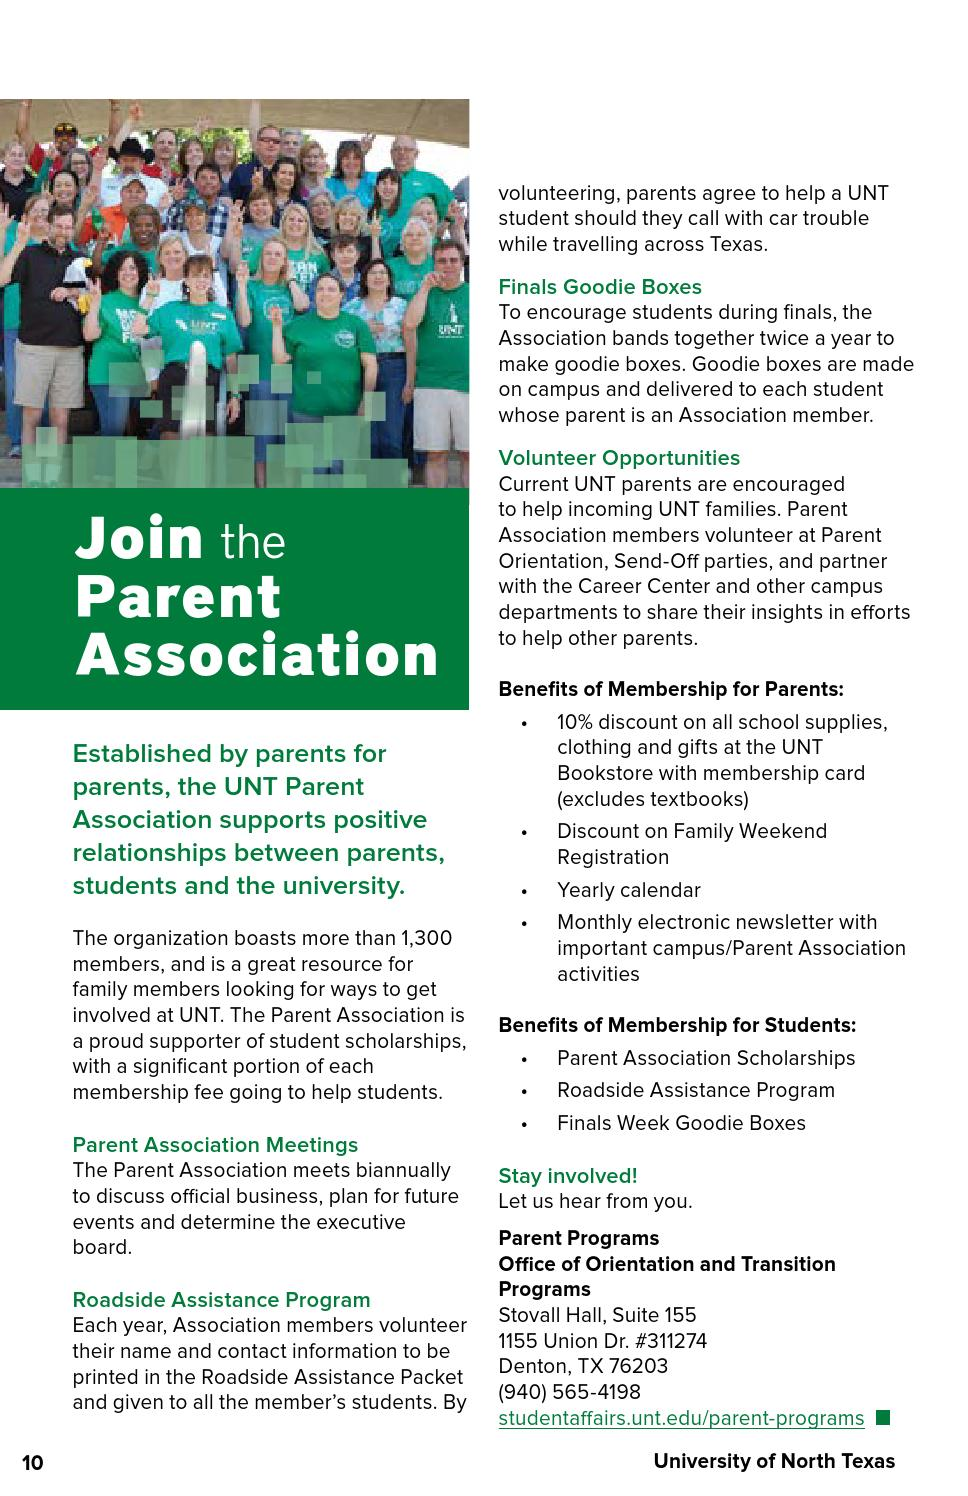 University Of North Texas 2015 2016 Guide For Parents By